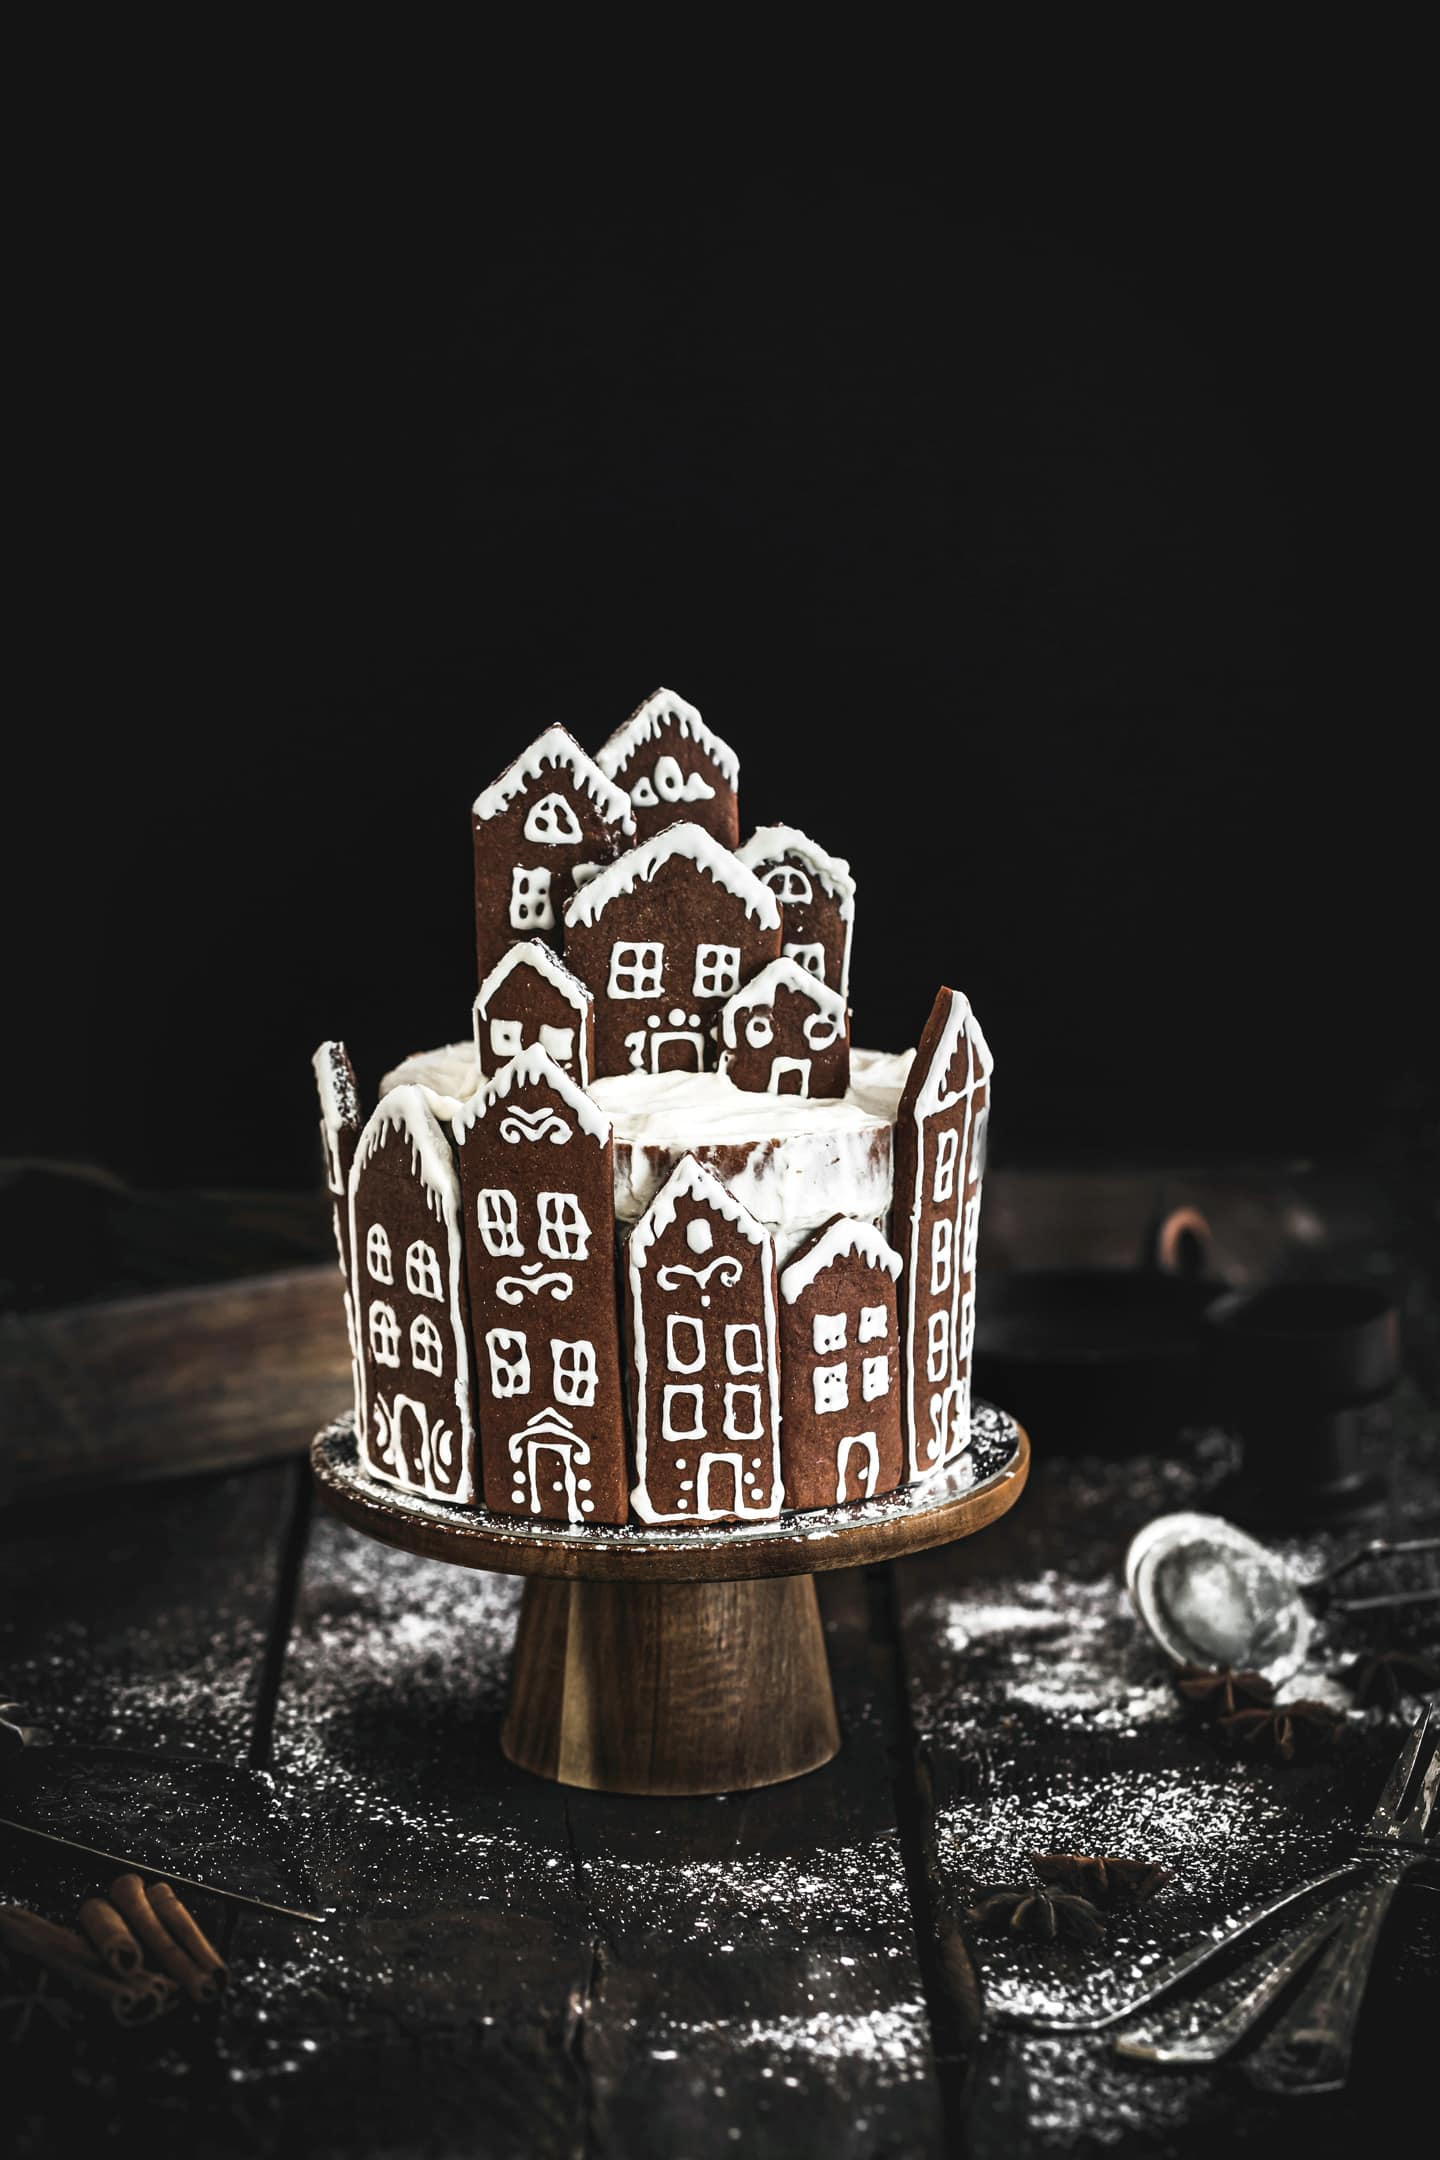 Gingerbread village layer cake